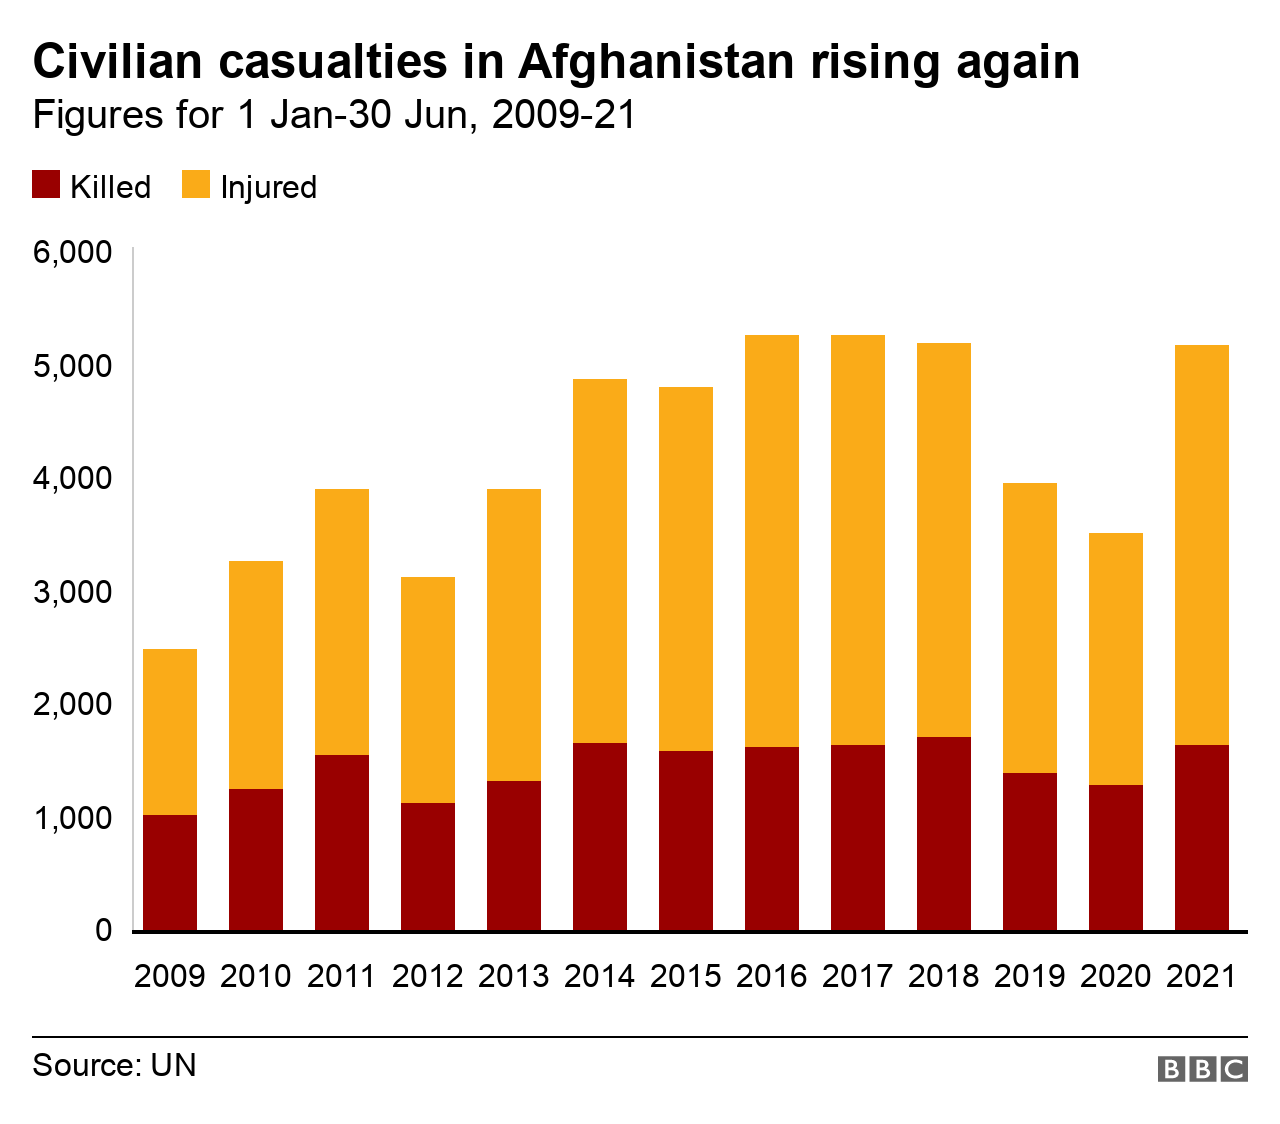 Graph showing UN figures on Afghan civilian casualties from 2009 to 2021